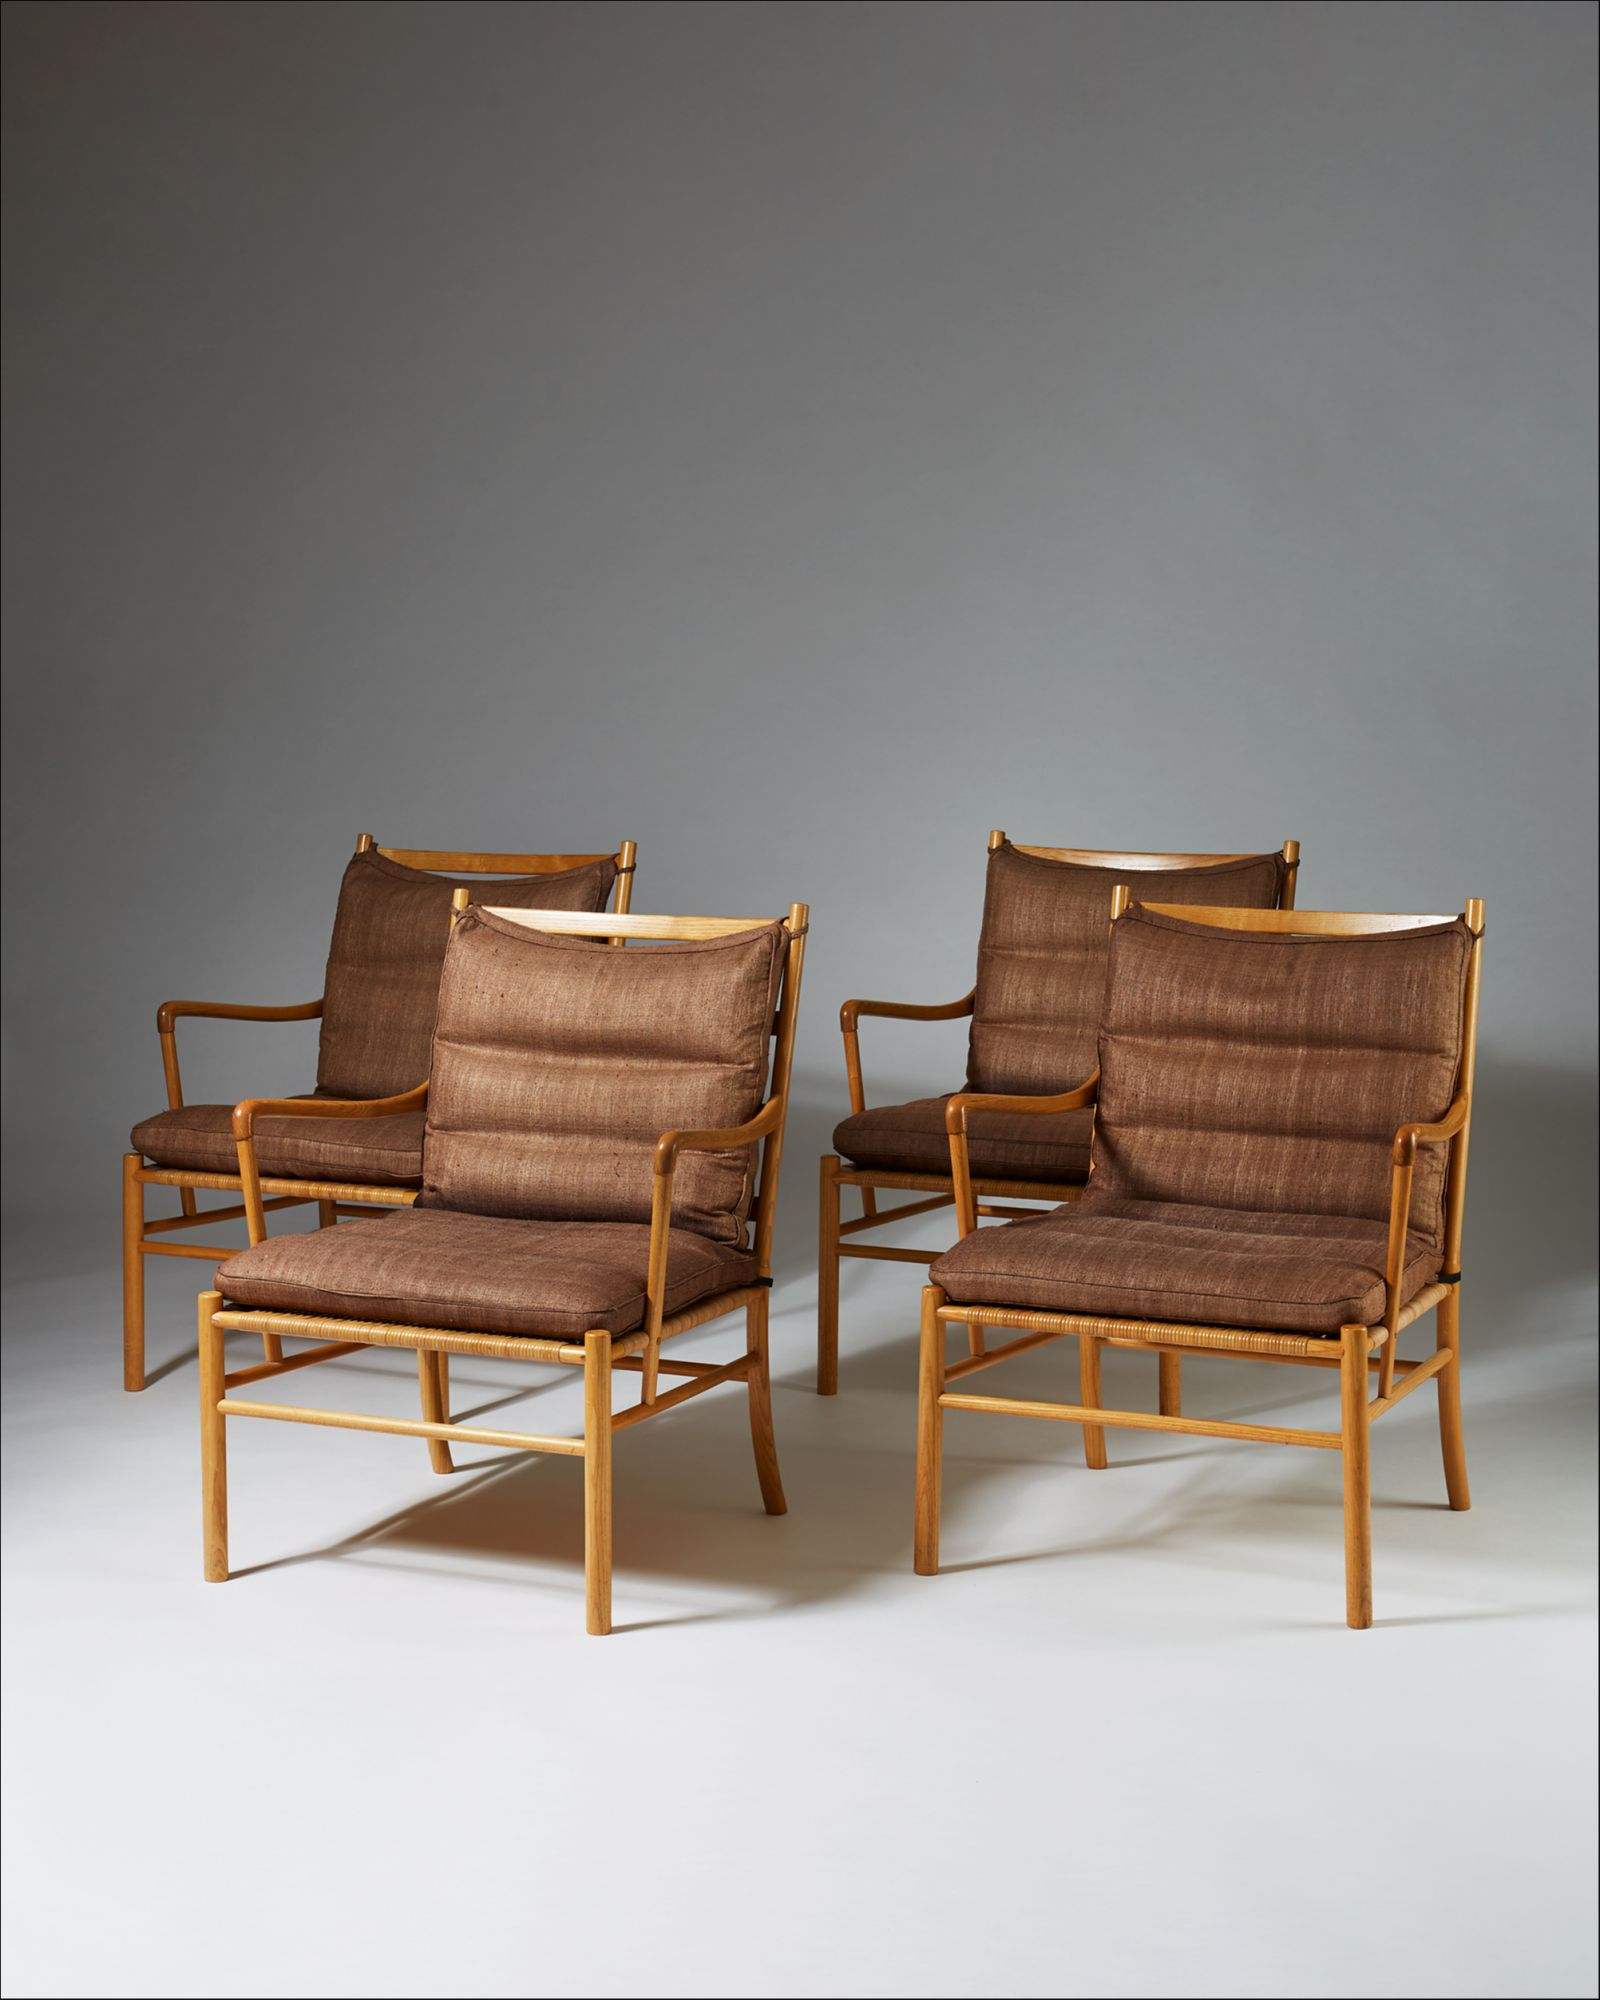 Superb Set Of Four Colonial Chairs Model Pj 149 Designed By Ole Ibusinesslaw Wood Chair Design Ideas Ibusinesslaworg